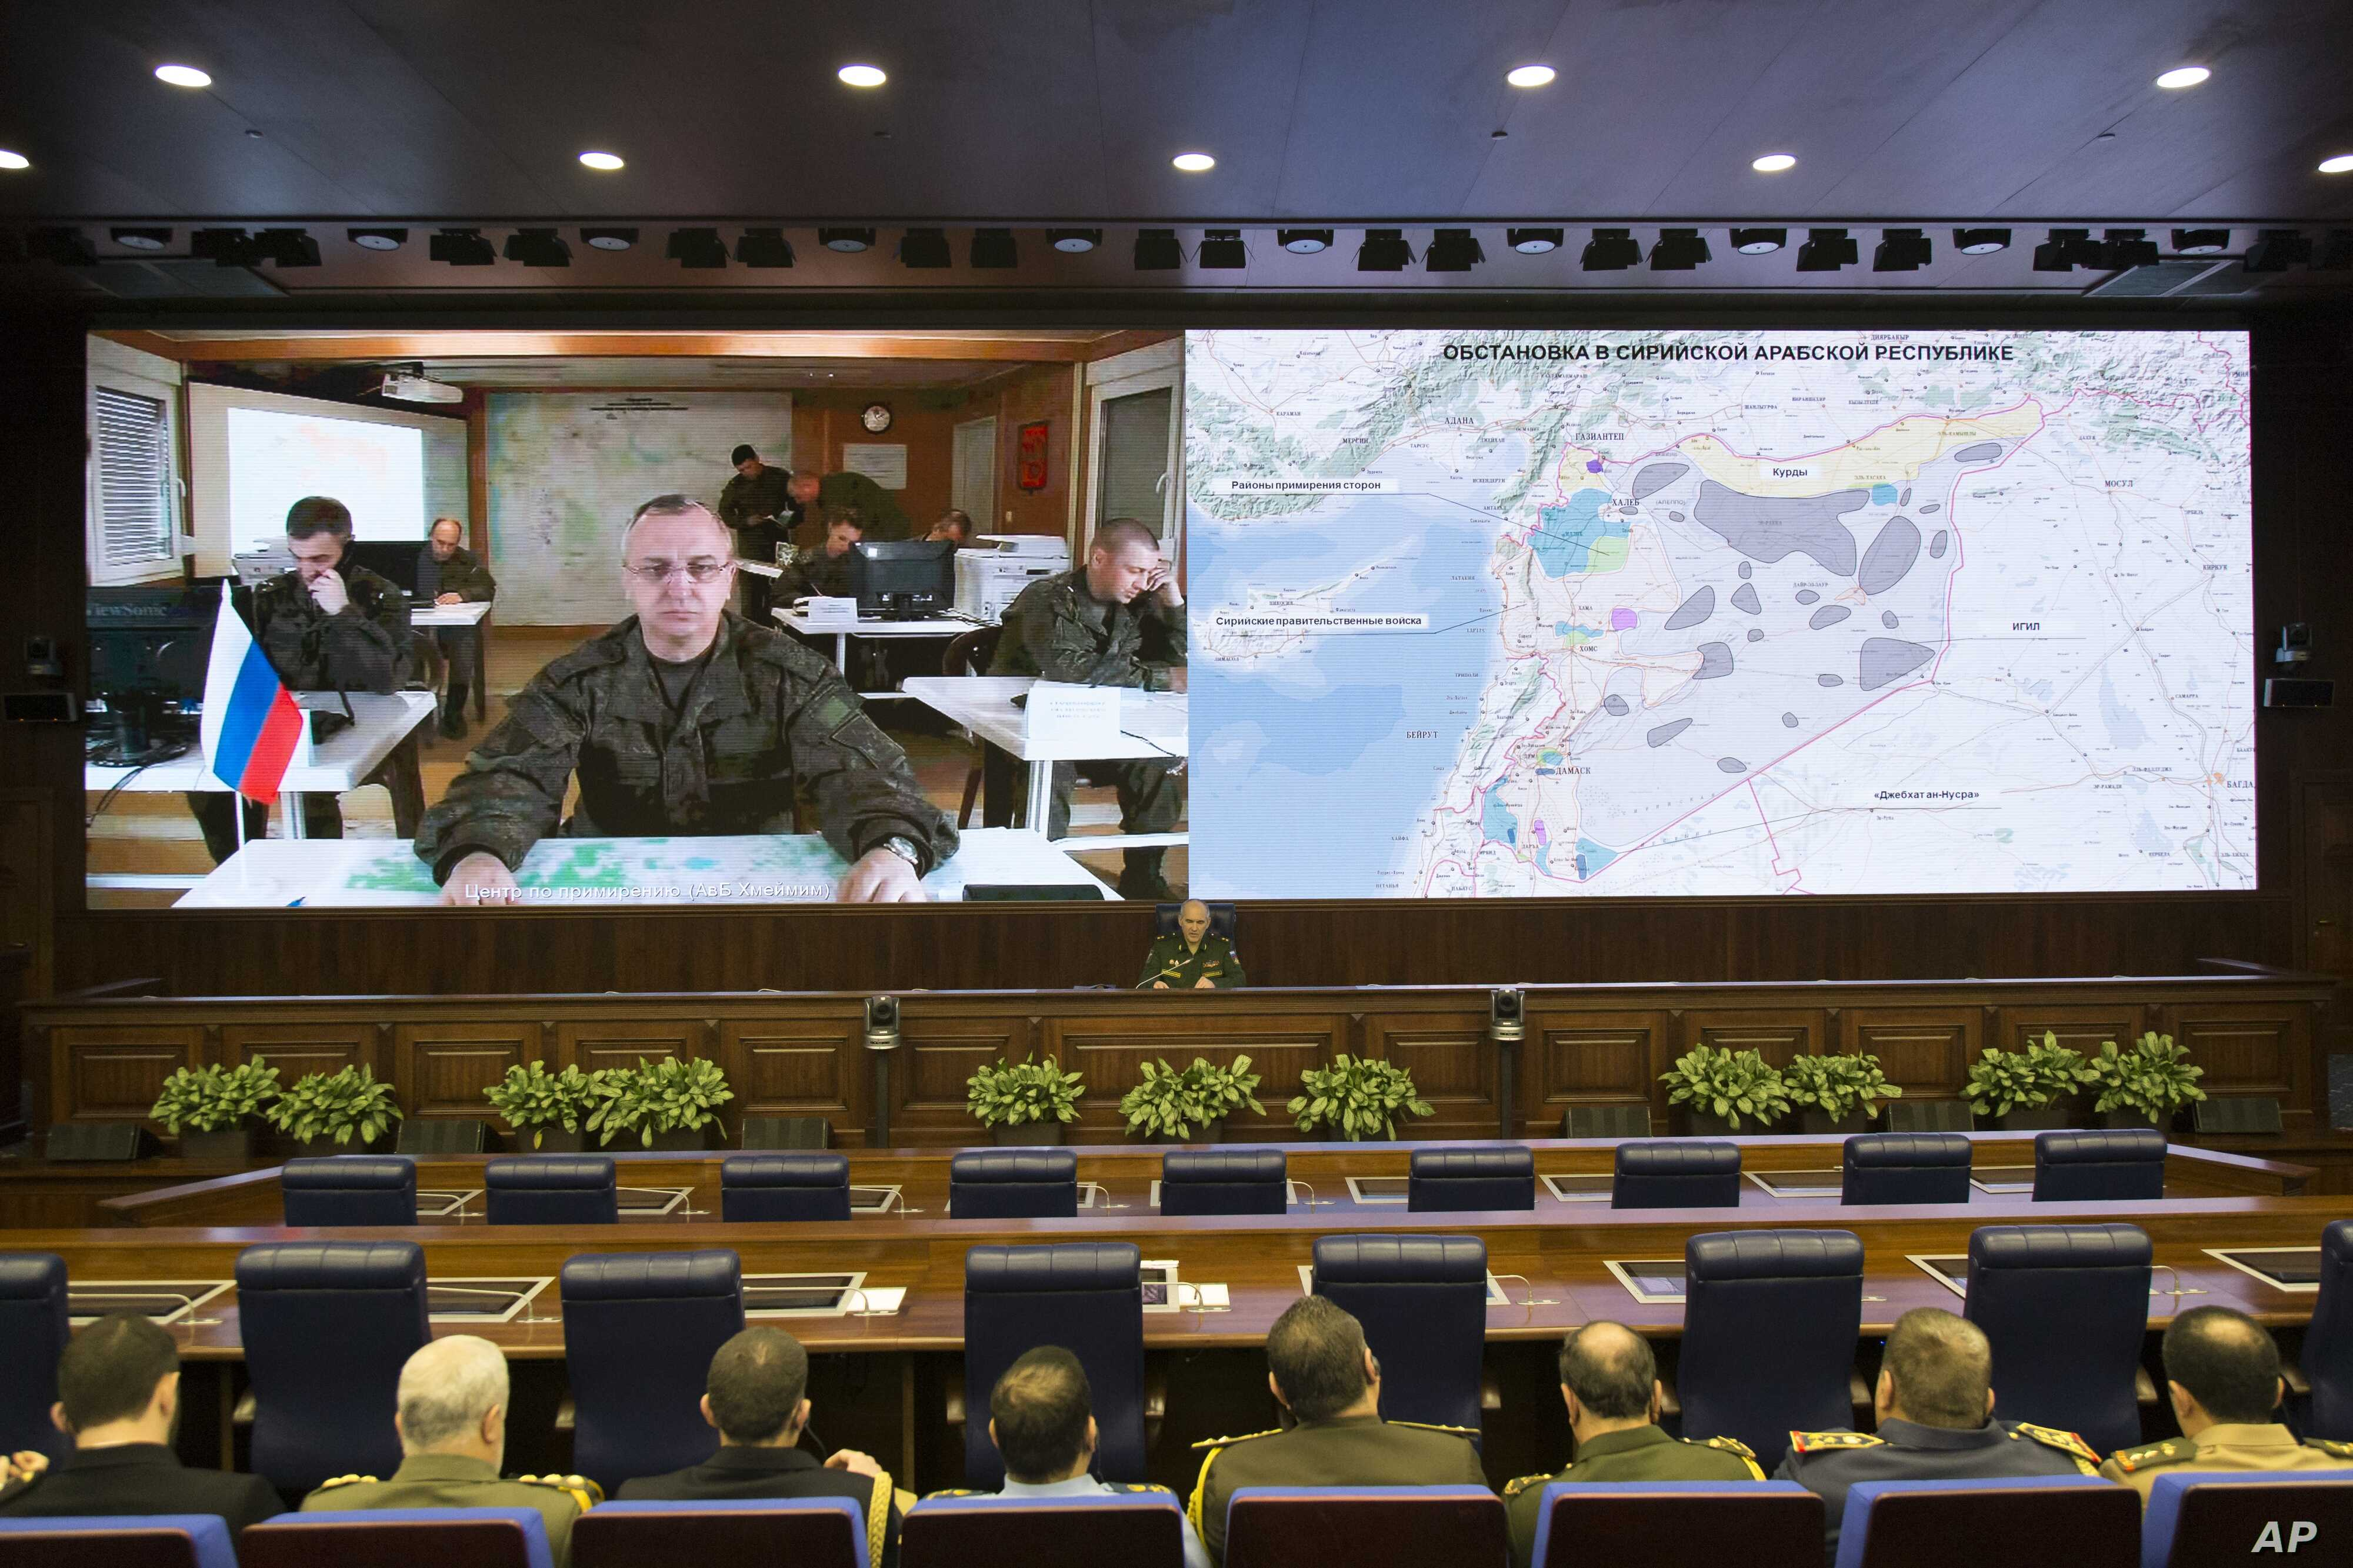 Lt.-Gen. Sergei Rudskoi of the Russian Military General Staff, background center, speaks to the media in Moscow, Feb. 27, 2016. A top military official said Russia has halted airstrikes in areas where armed groups said they would abide by a cease-fir...